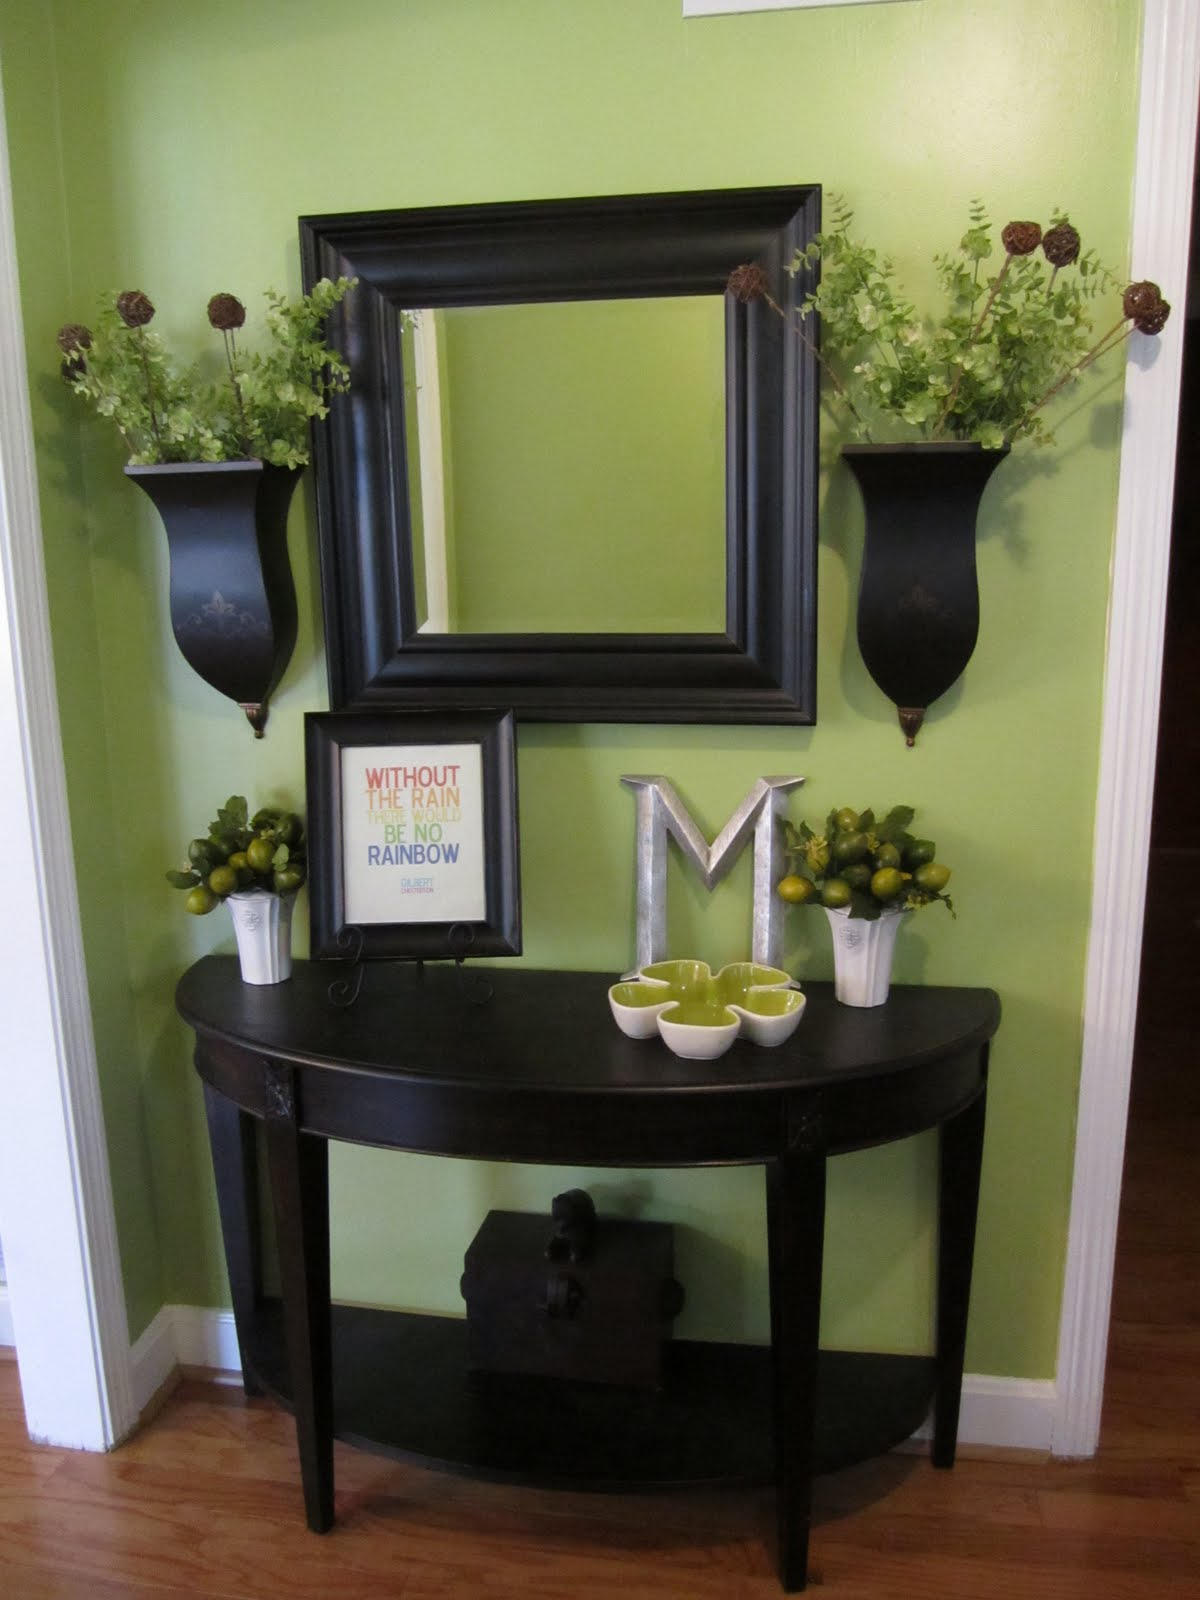 Foyer Decorating Ideas : Entryway ideas for school interior home design